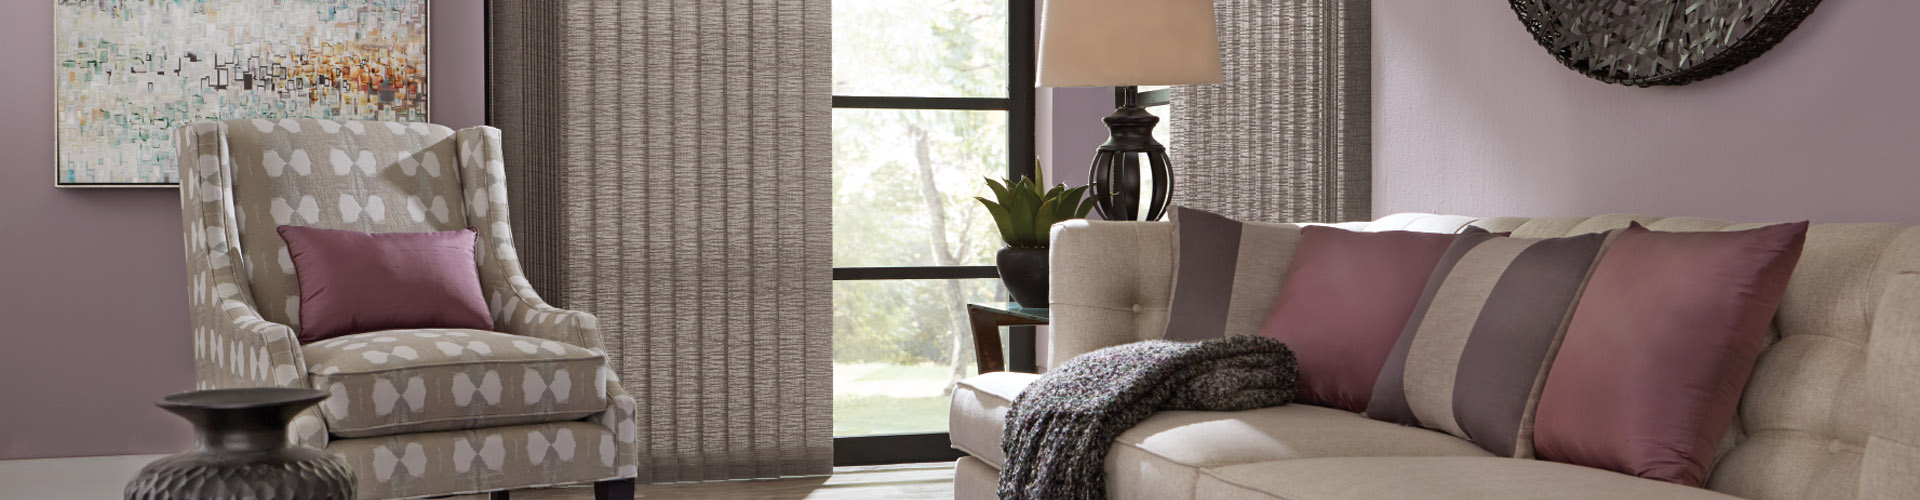 vertical blinds header image